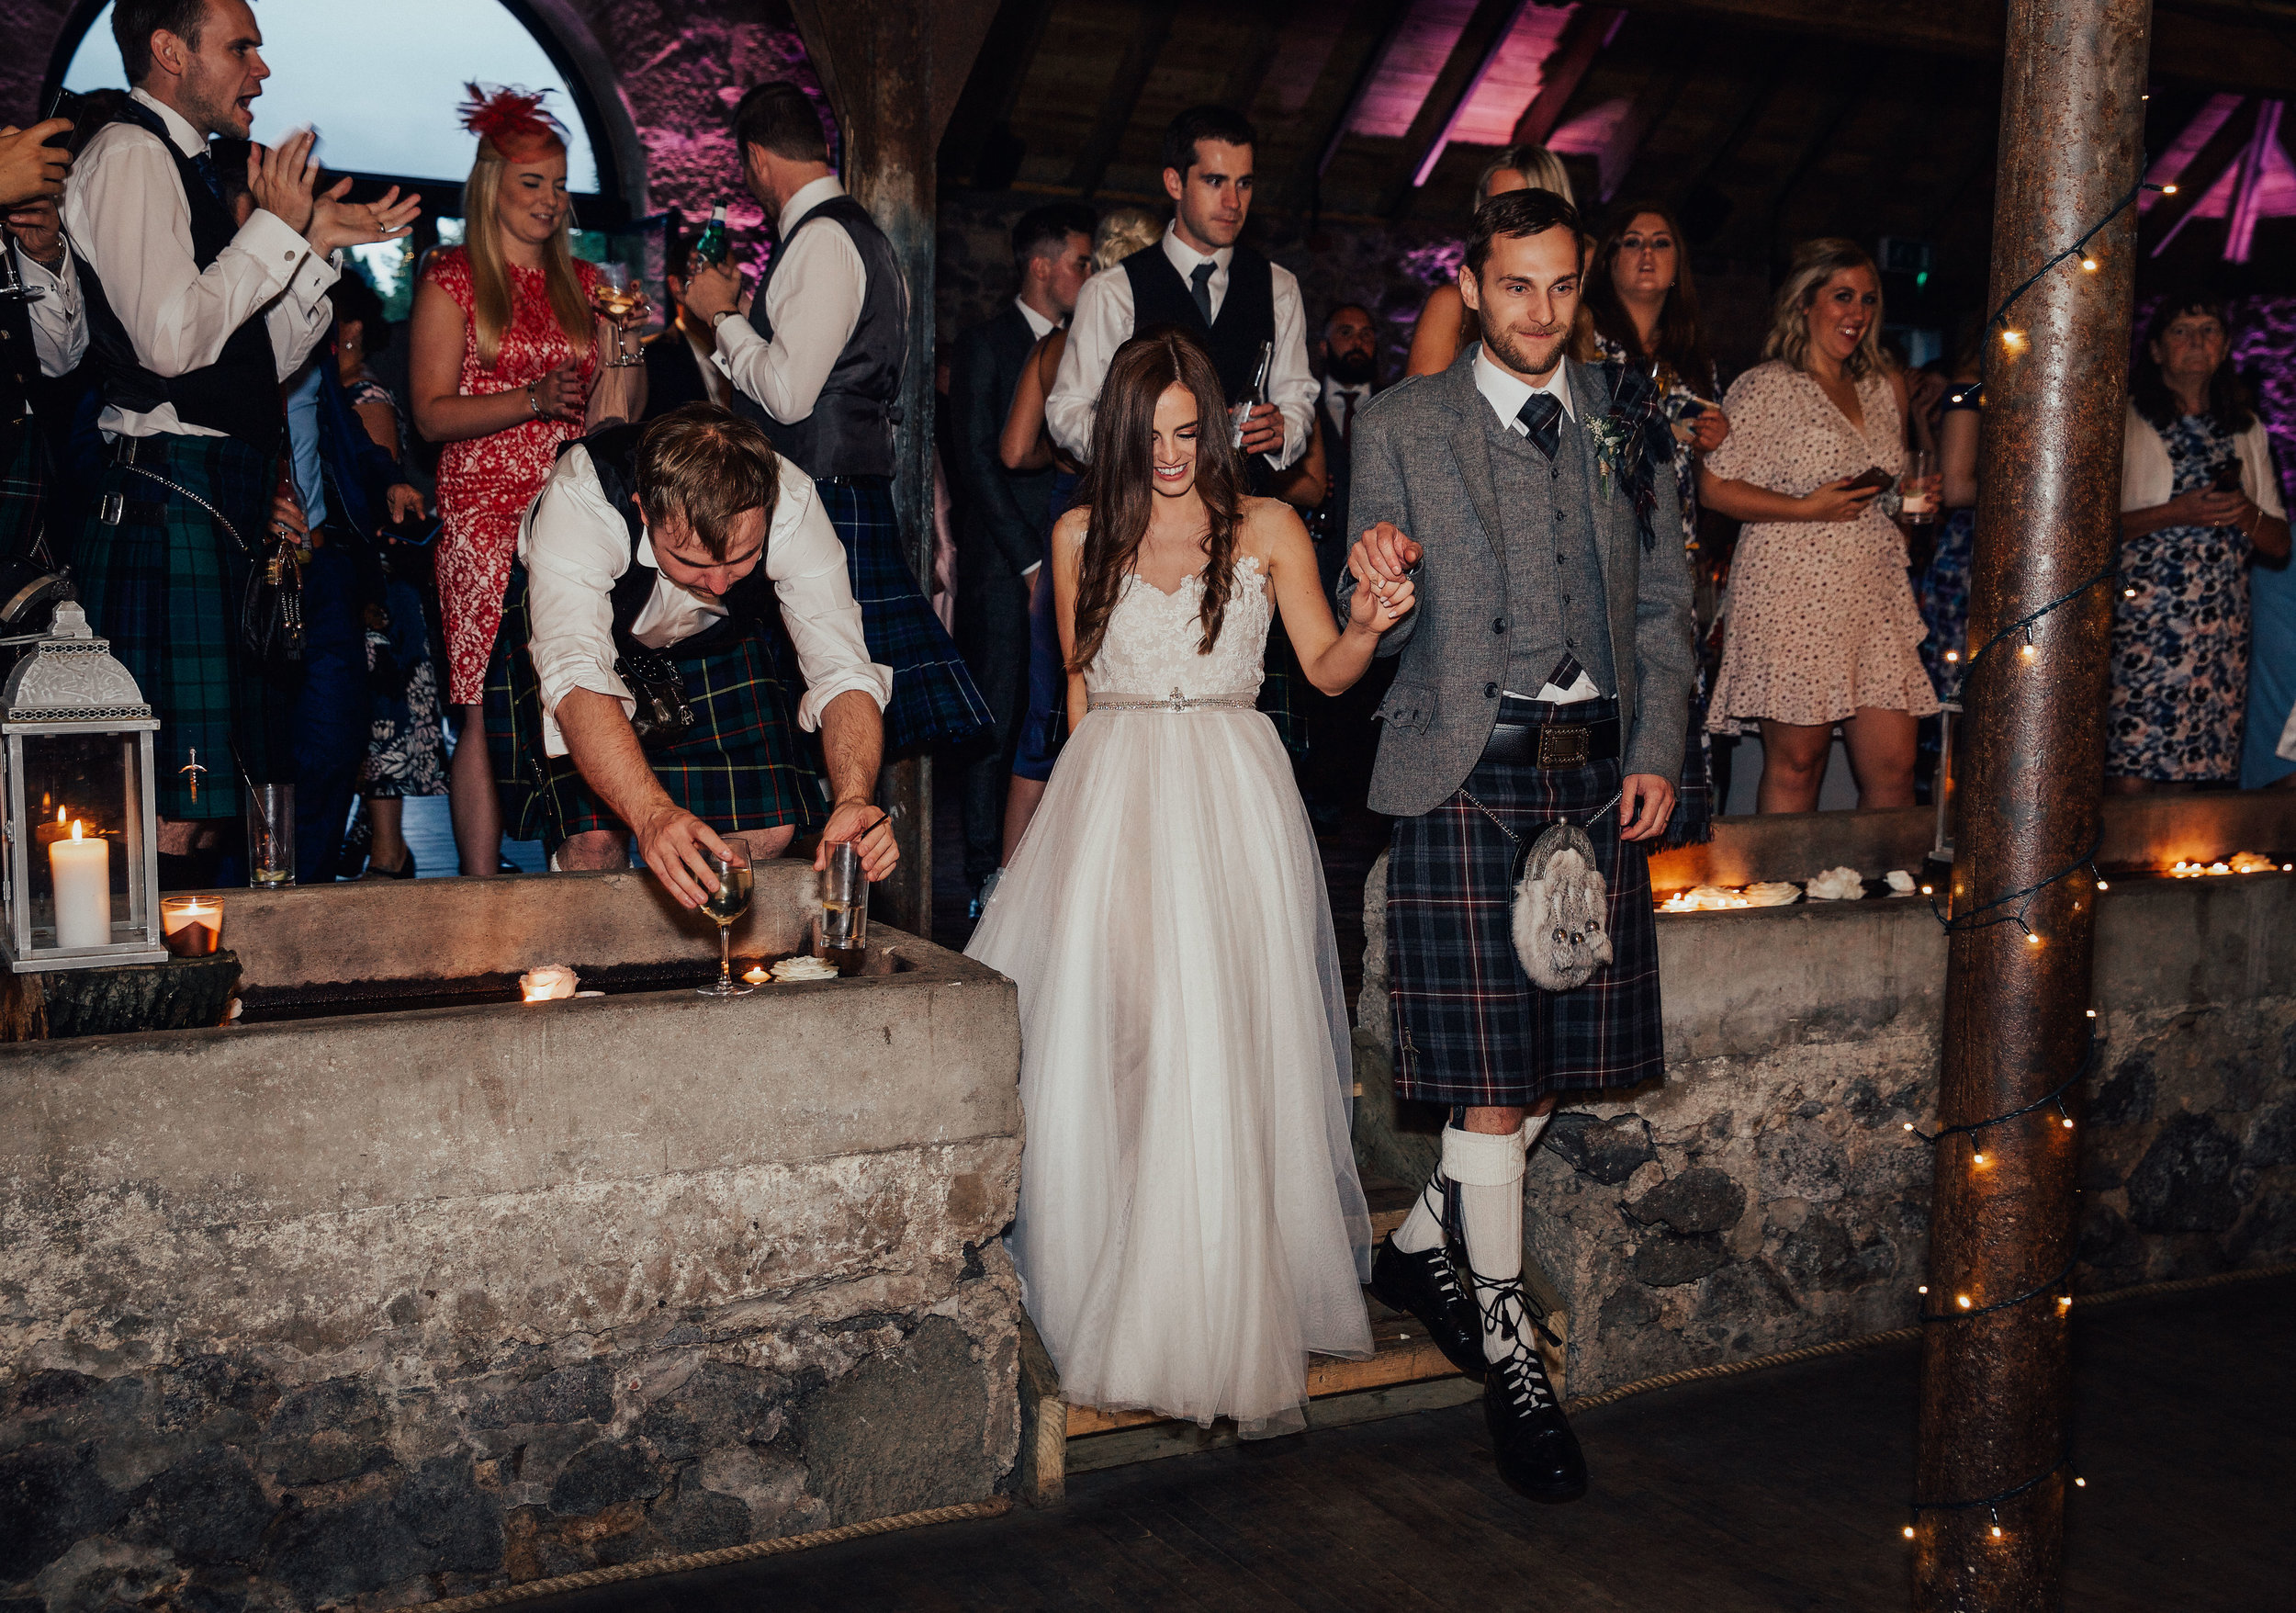 BYRE_AT_INCHYRA_WEDDING_PHOTOGRAPHER_PJ_PHILLIPS_PHOTOGRAPHY_KAYLEIGH_ANDREW_158.jpg